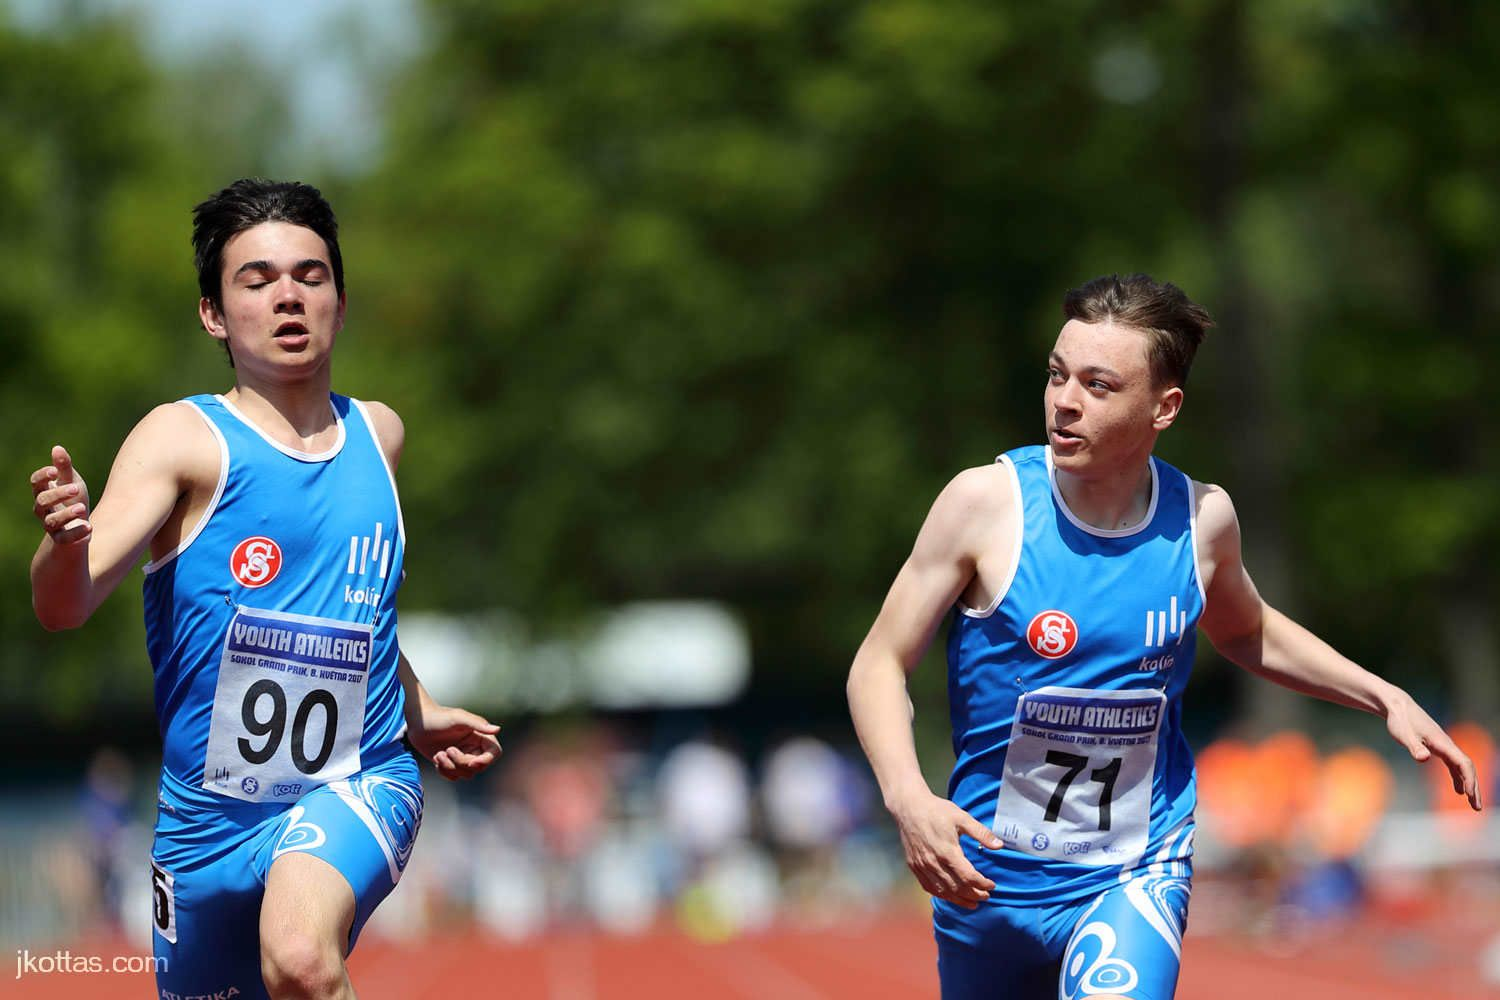 youth-athletics-kolin-16